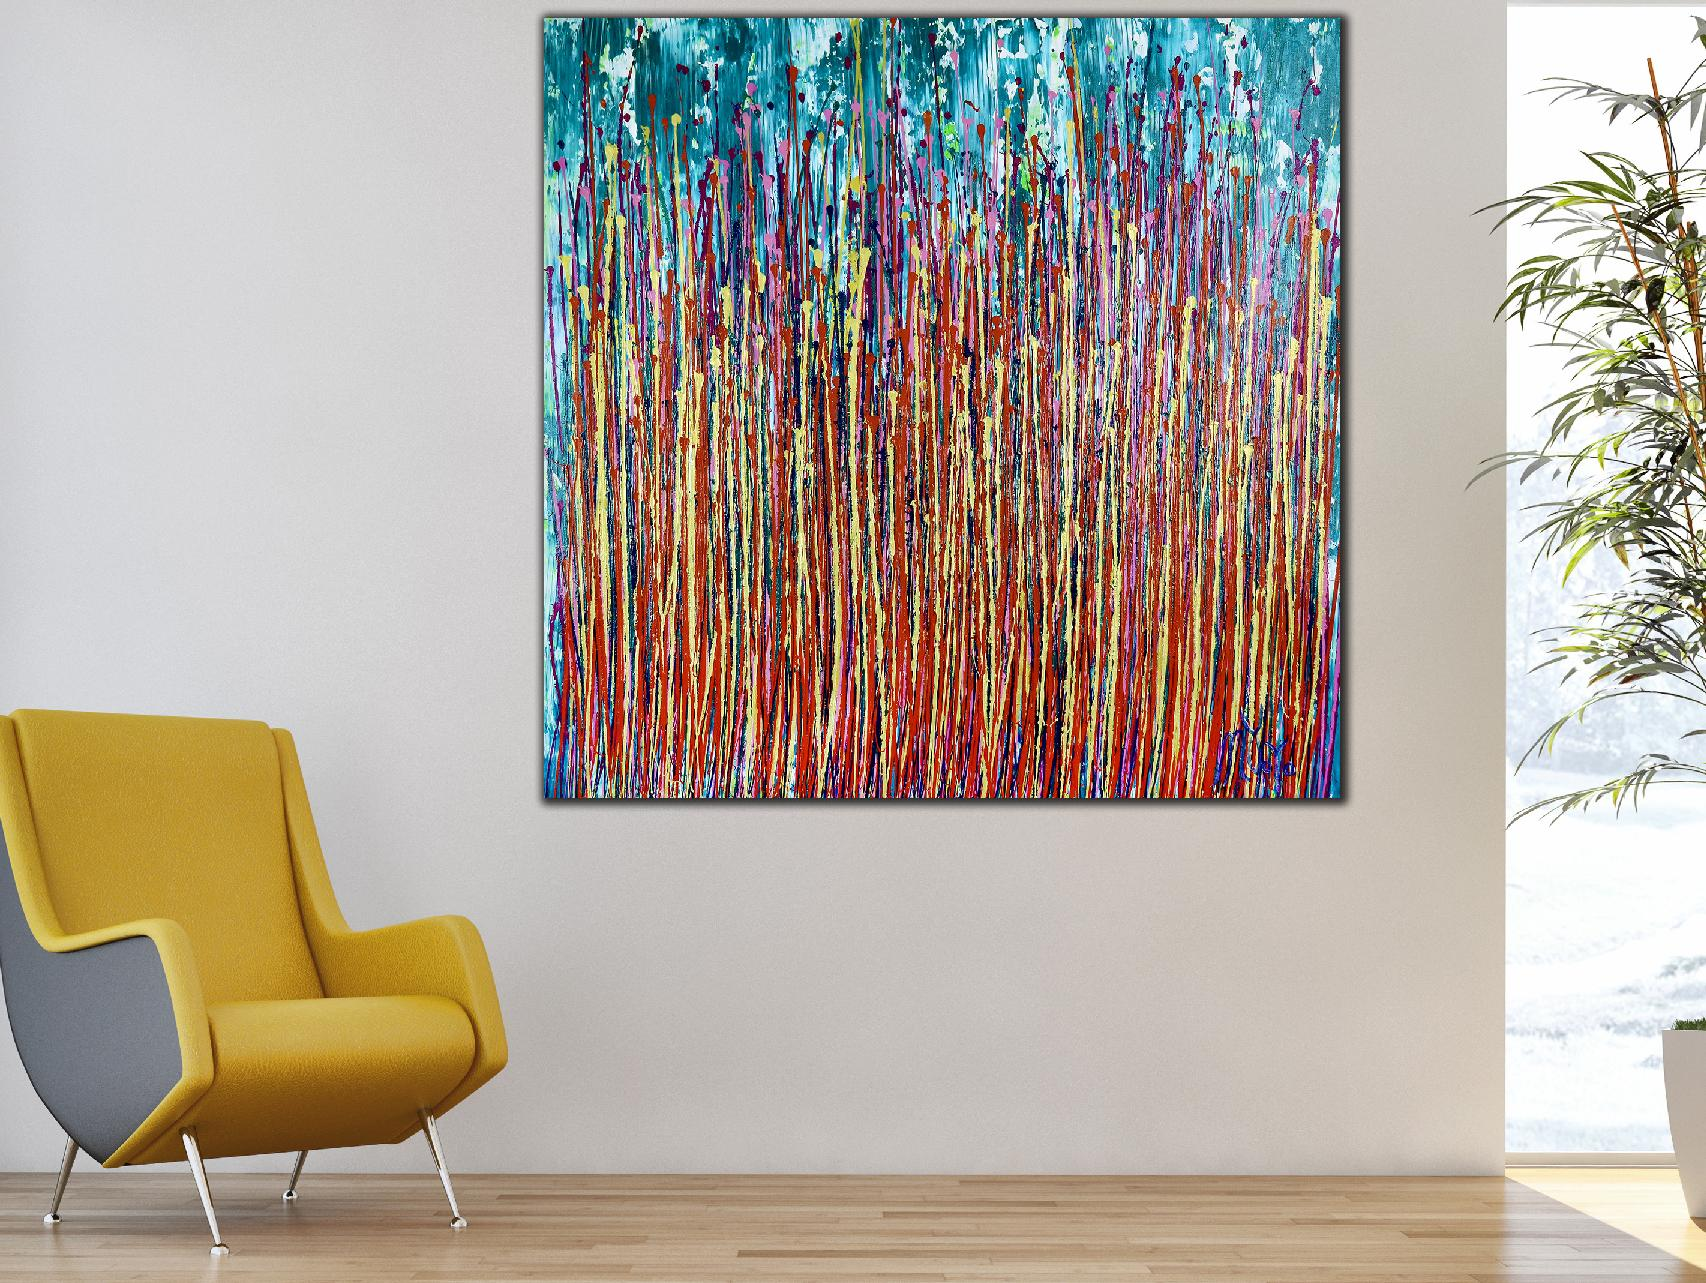 Awakening Garden 5 (2020) Edit Abstract painting by Nestor Toro